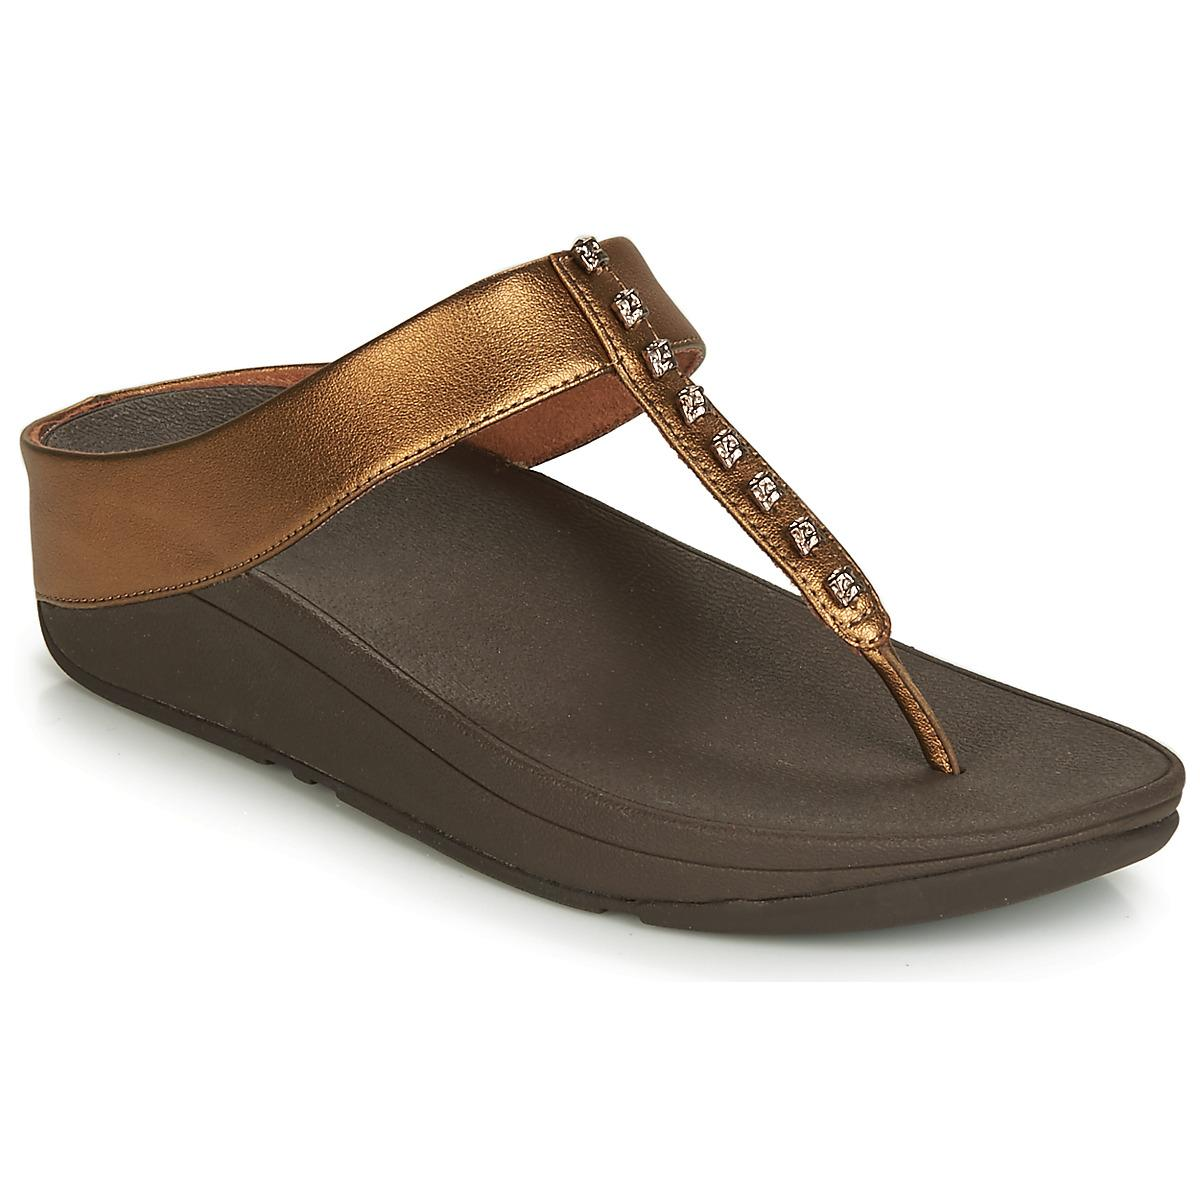 dc5b4d59b Fitflop Fino Treasure Women s Sandals In Multicolour in Brown - Lyst